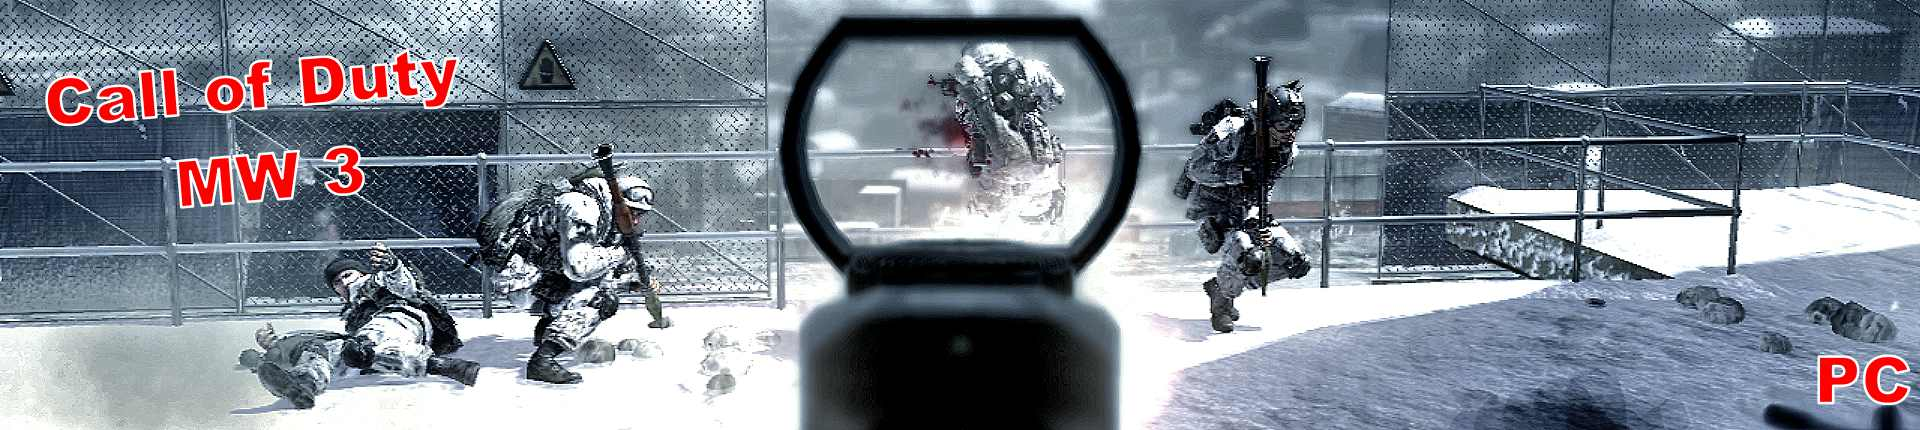 Call Of Duty Modern Warfare 3 Highly Compressed Download For Pc 5 48gb